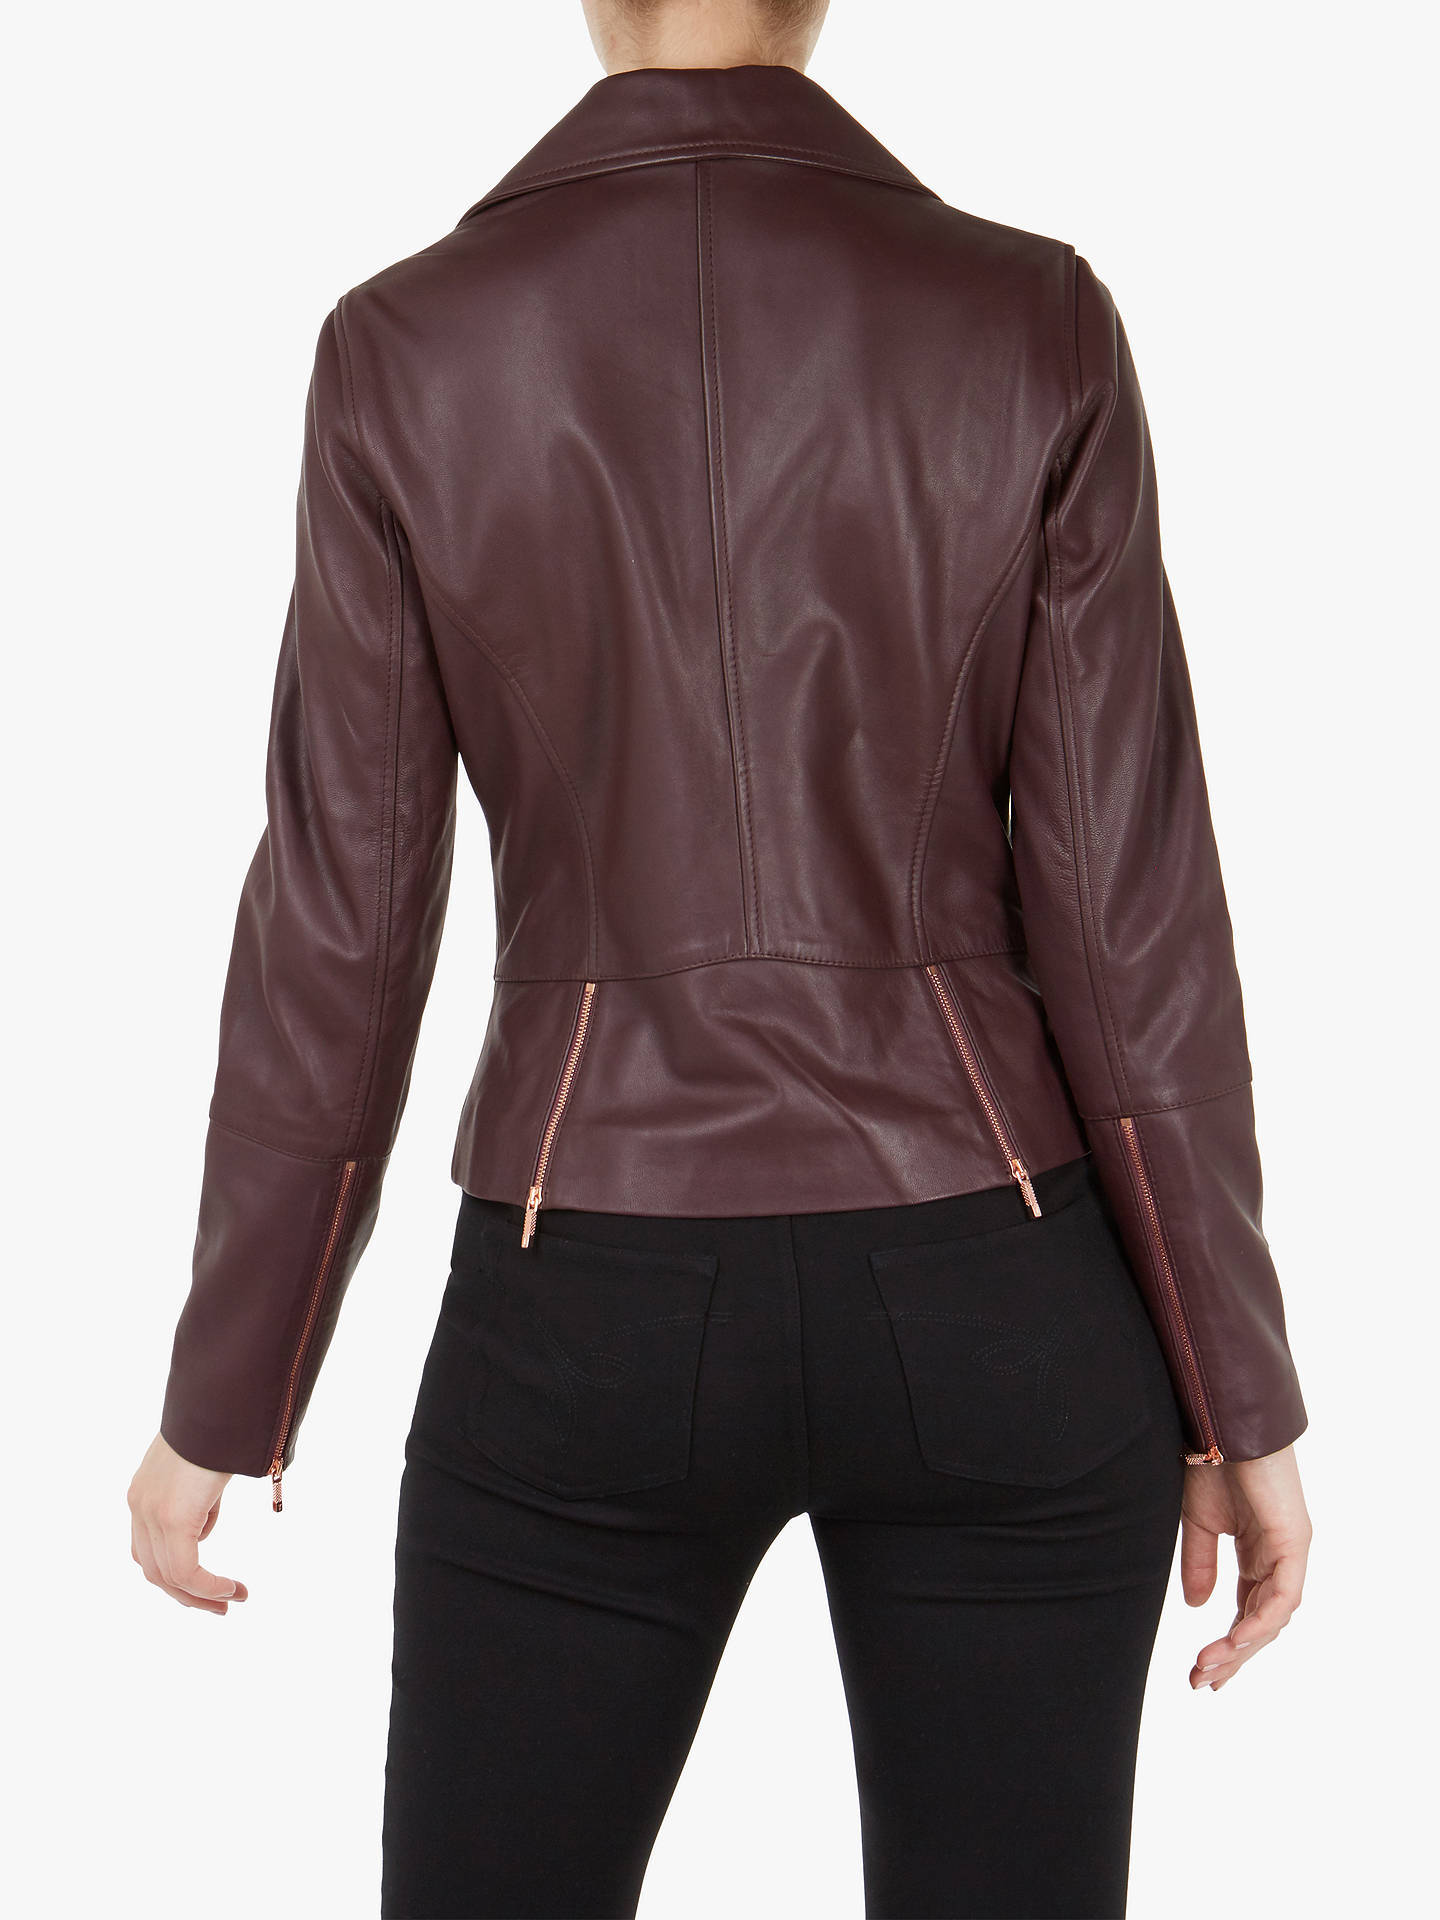 suitable for men/women moderate cost shop for newest Ted Baker Lizia Minimal Biker Jacket at John Lewis & Partners